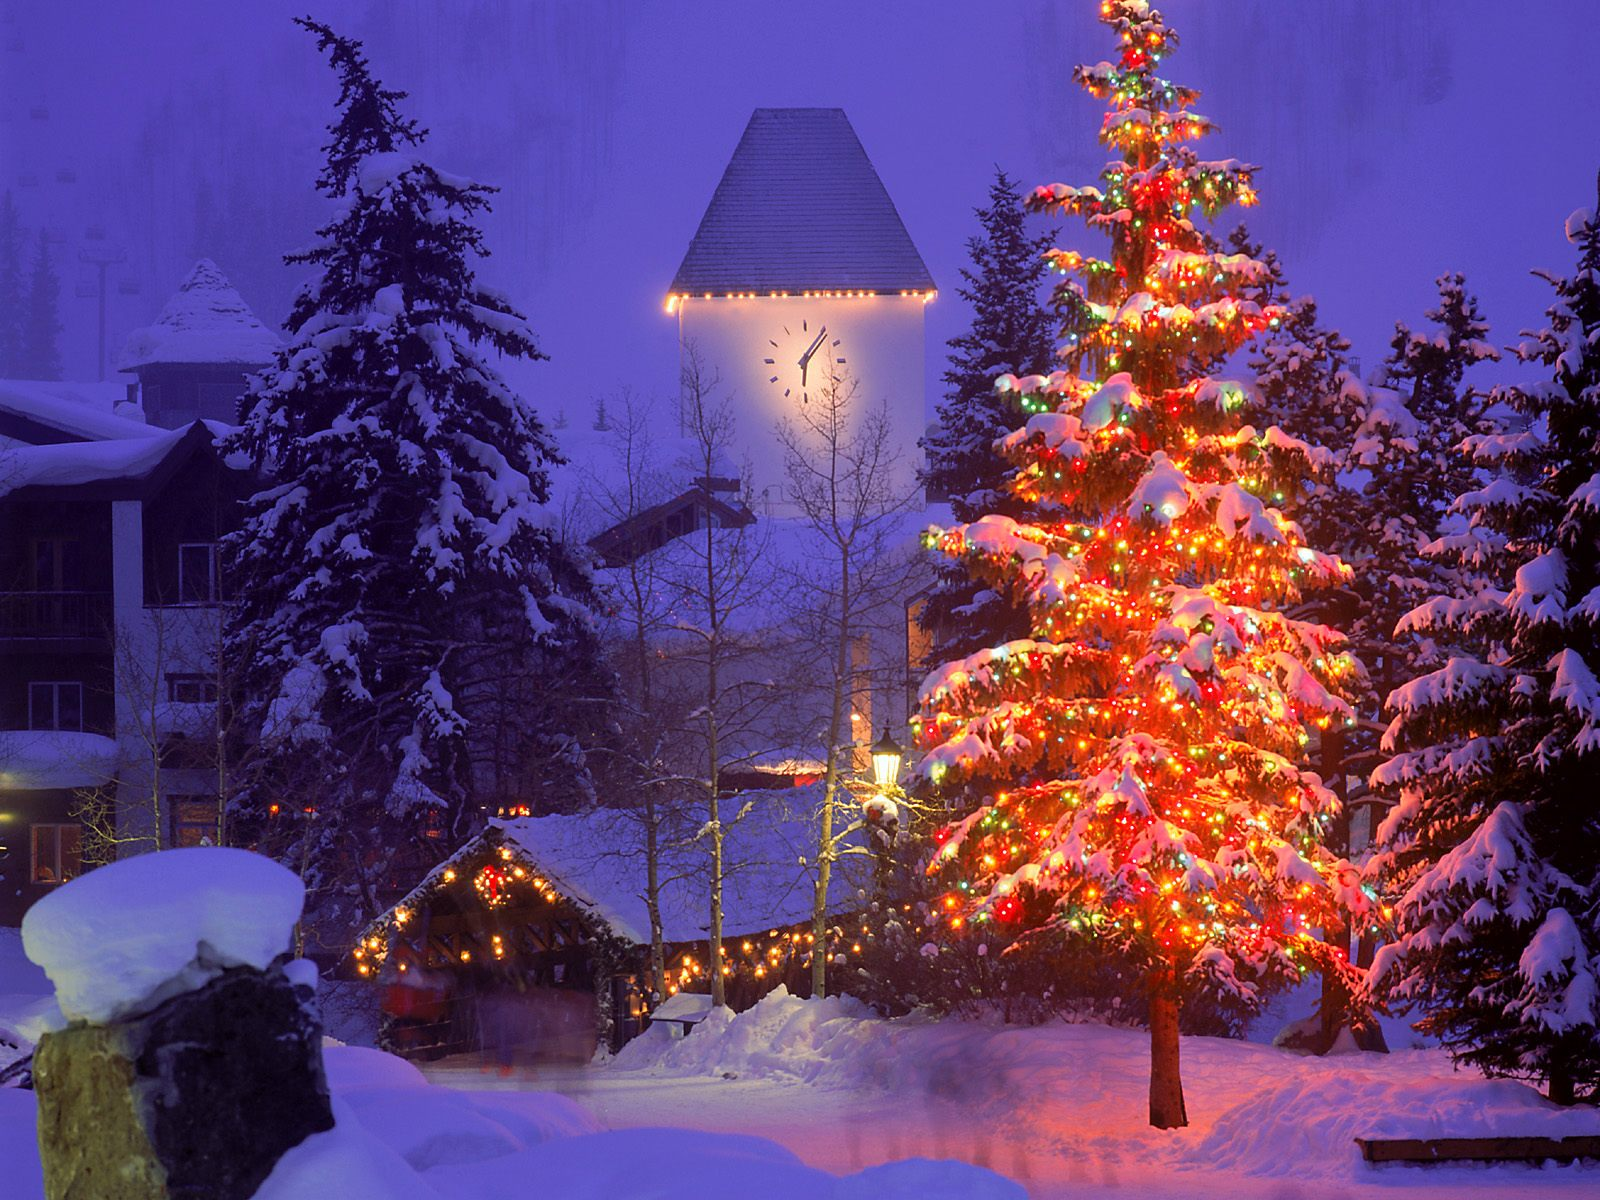 Christmas Wallpaper 6999